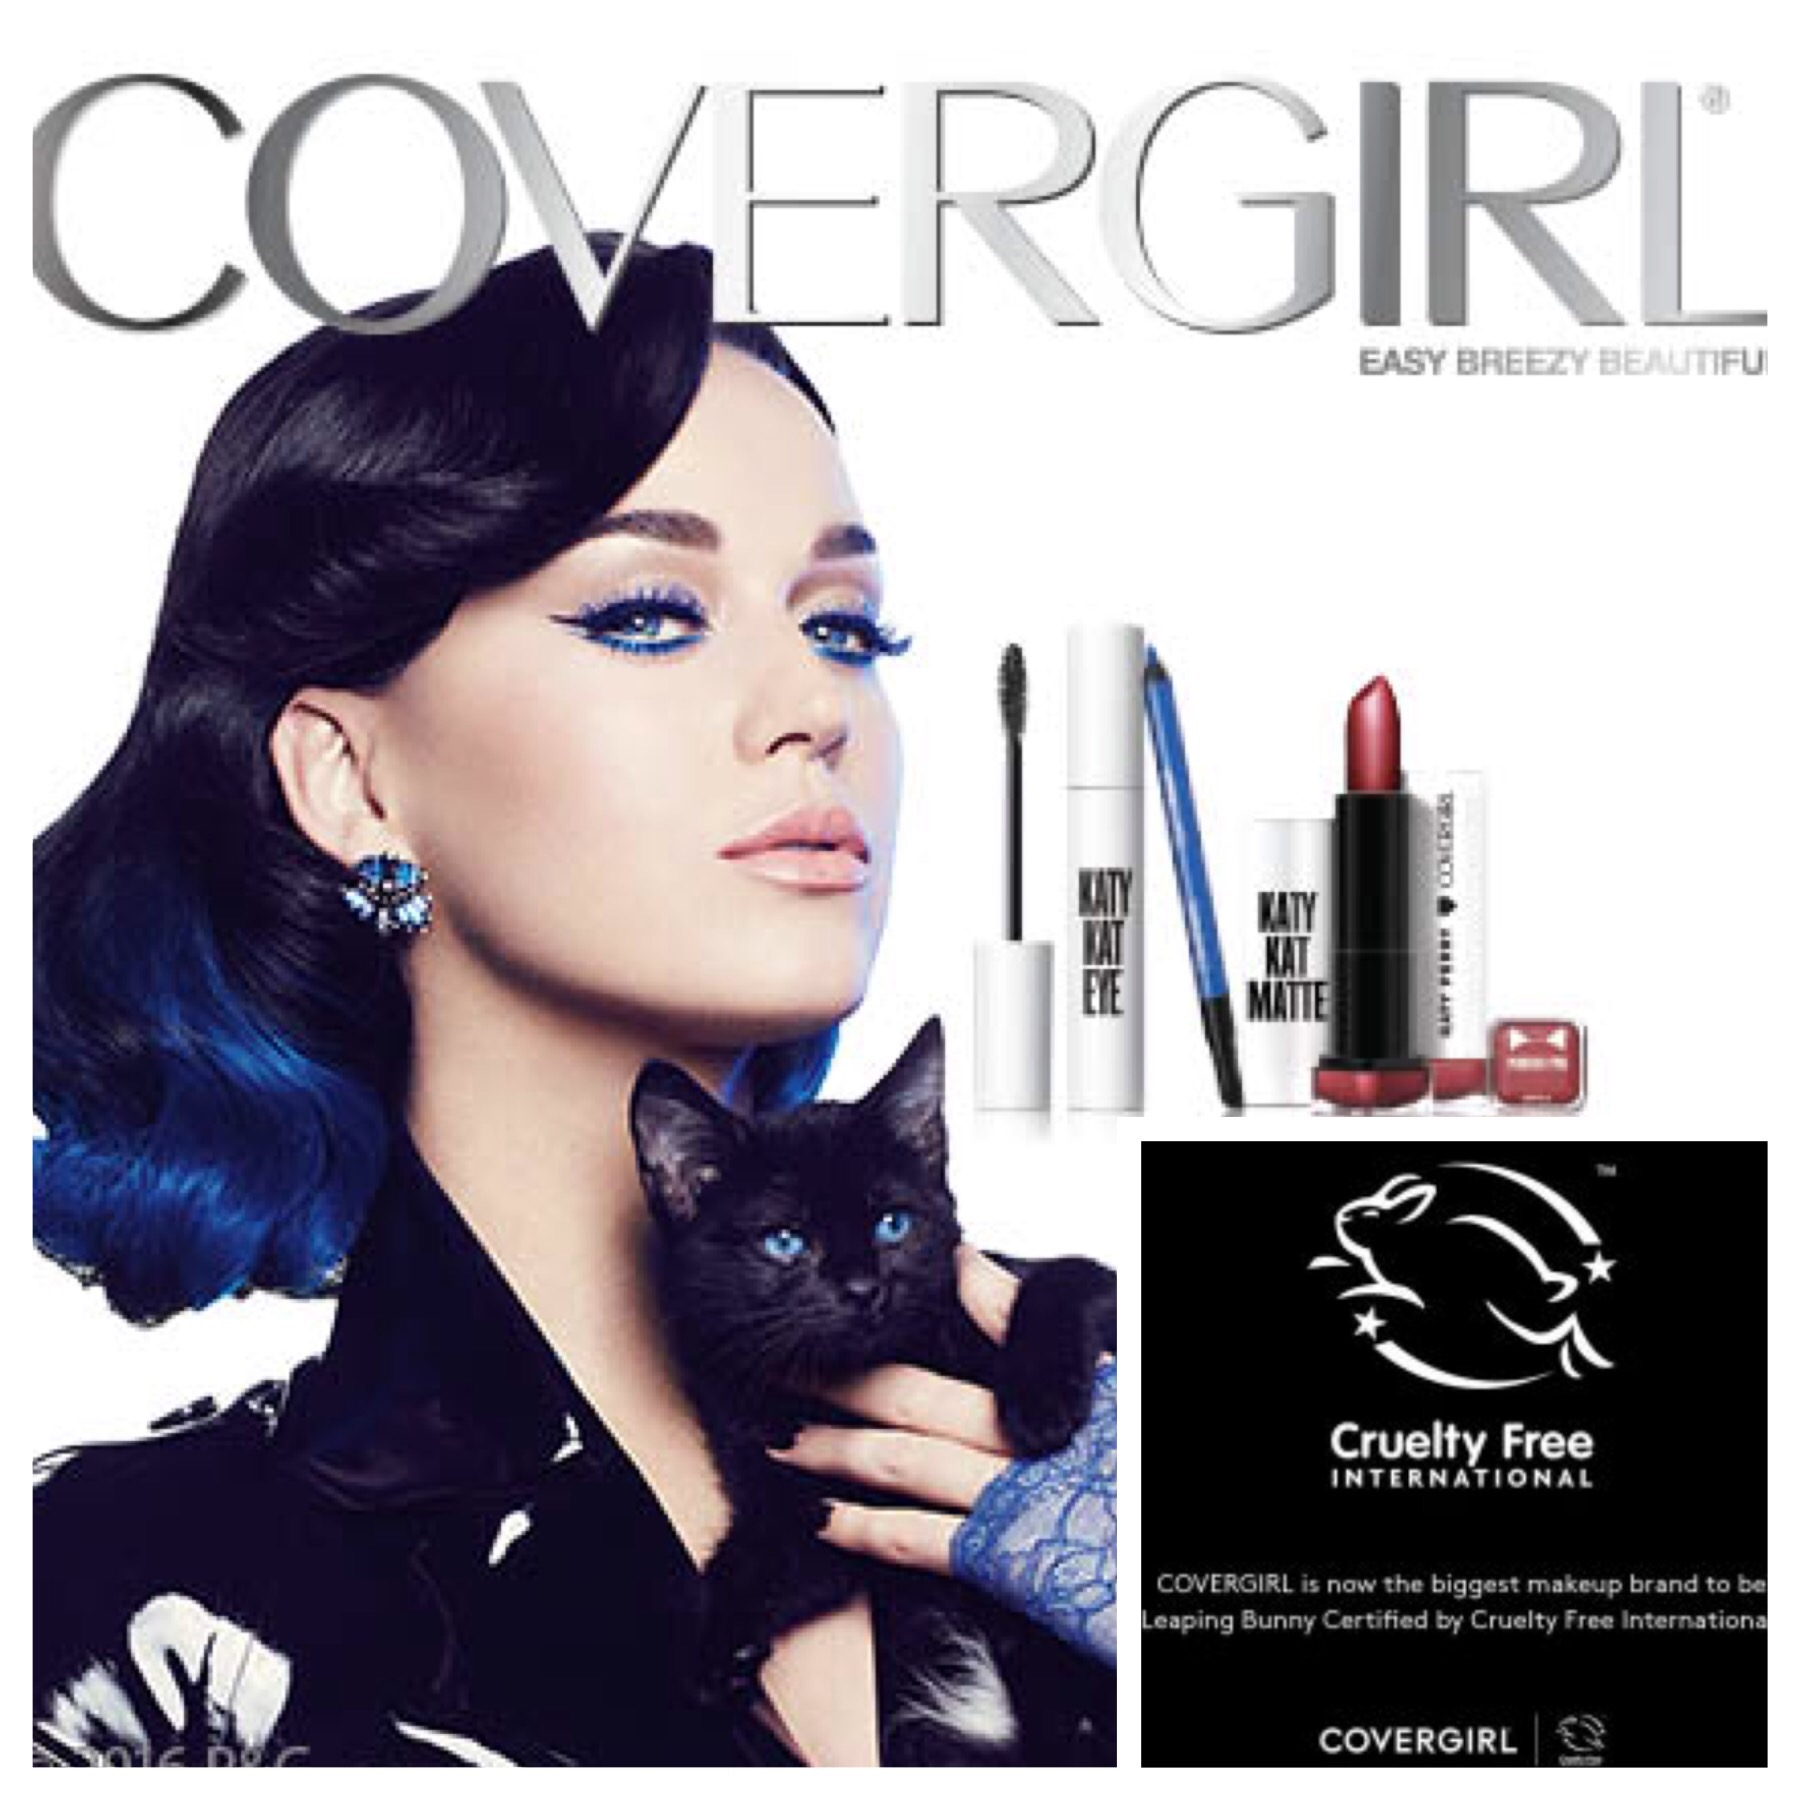 Covergirl Is Now The Largest Makeup